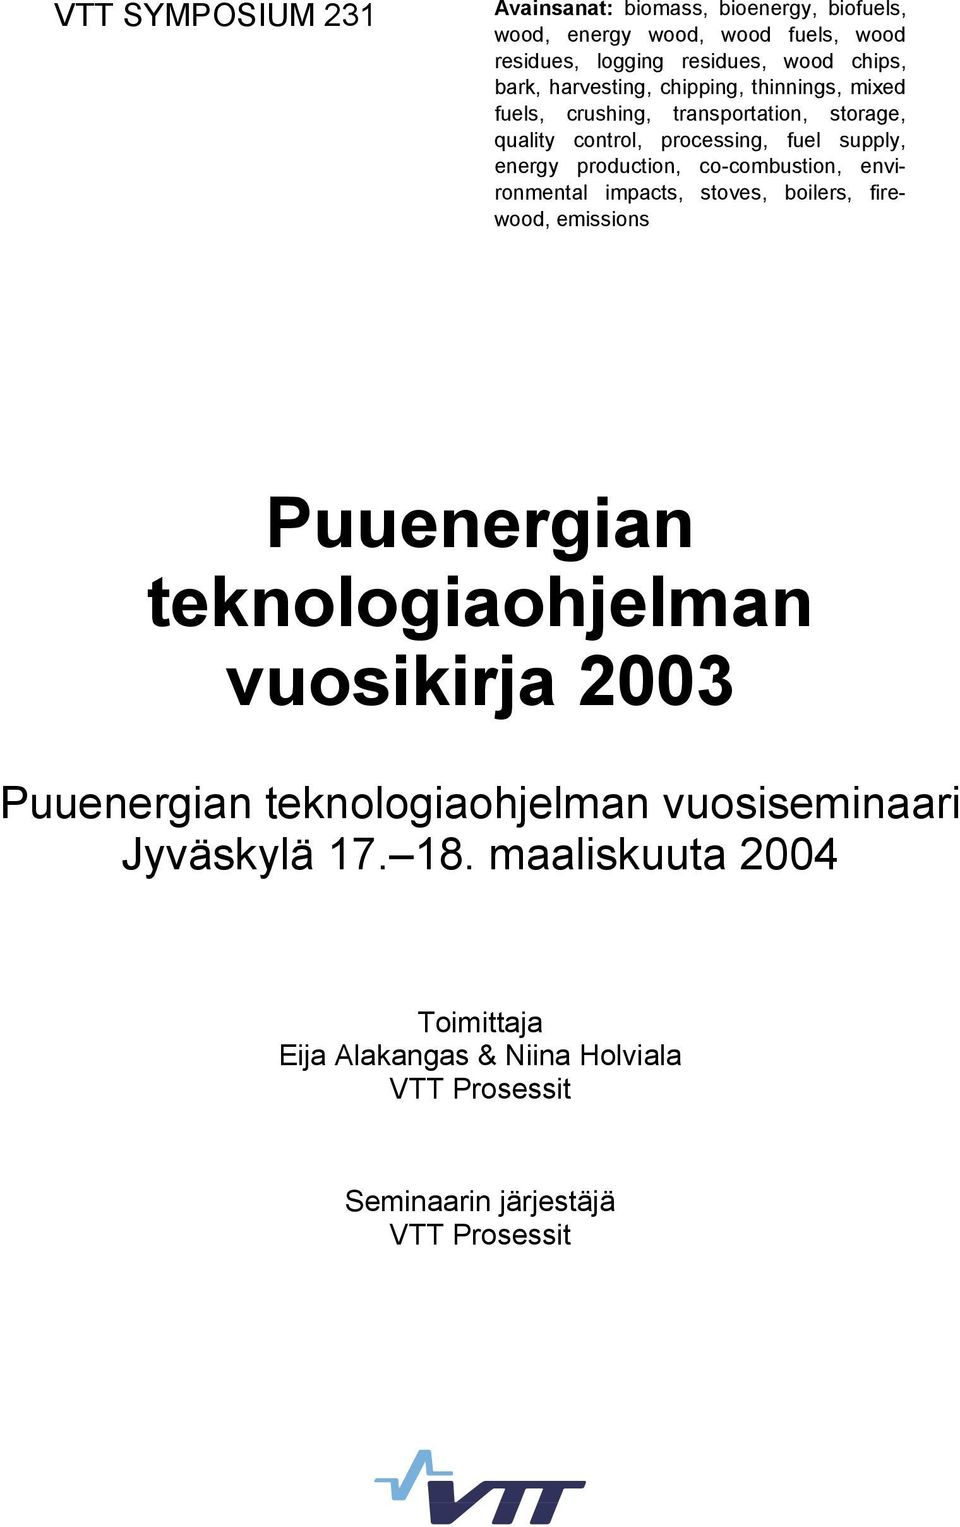 co-combustion, environmental impacts, stoves, boilers, firewood, emissions Puuenergian teknologiaohjelman vuosikirja 2003 Puuenergian